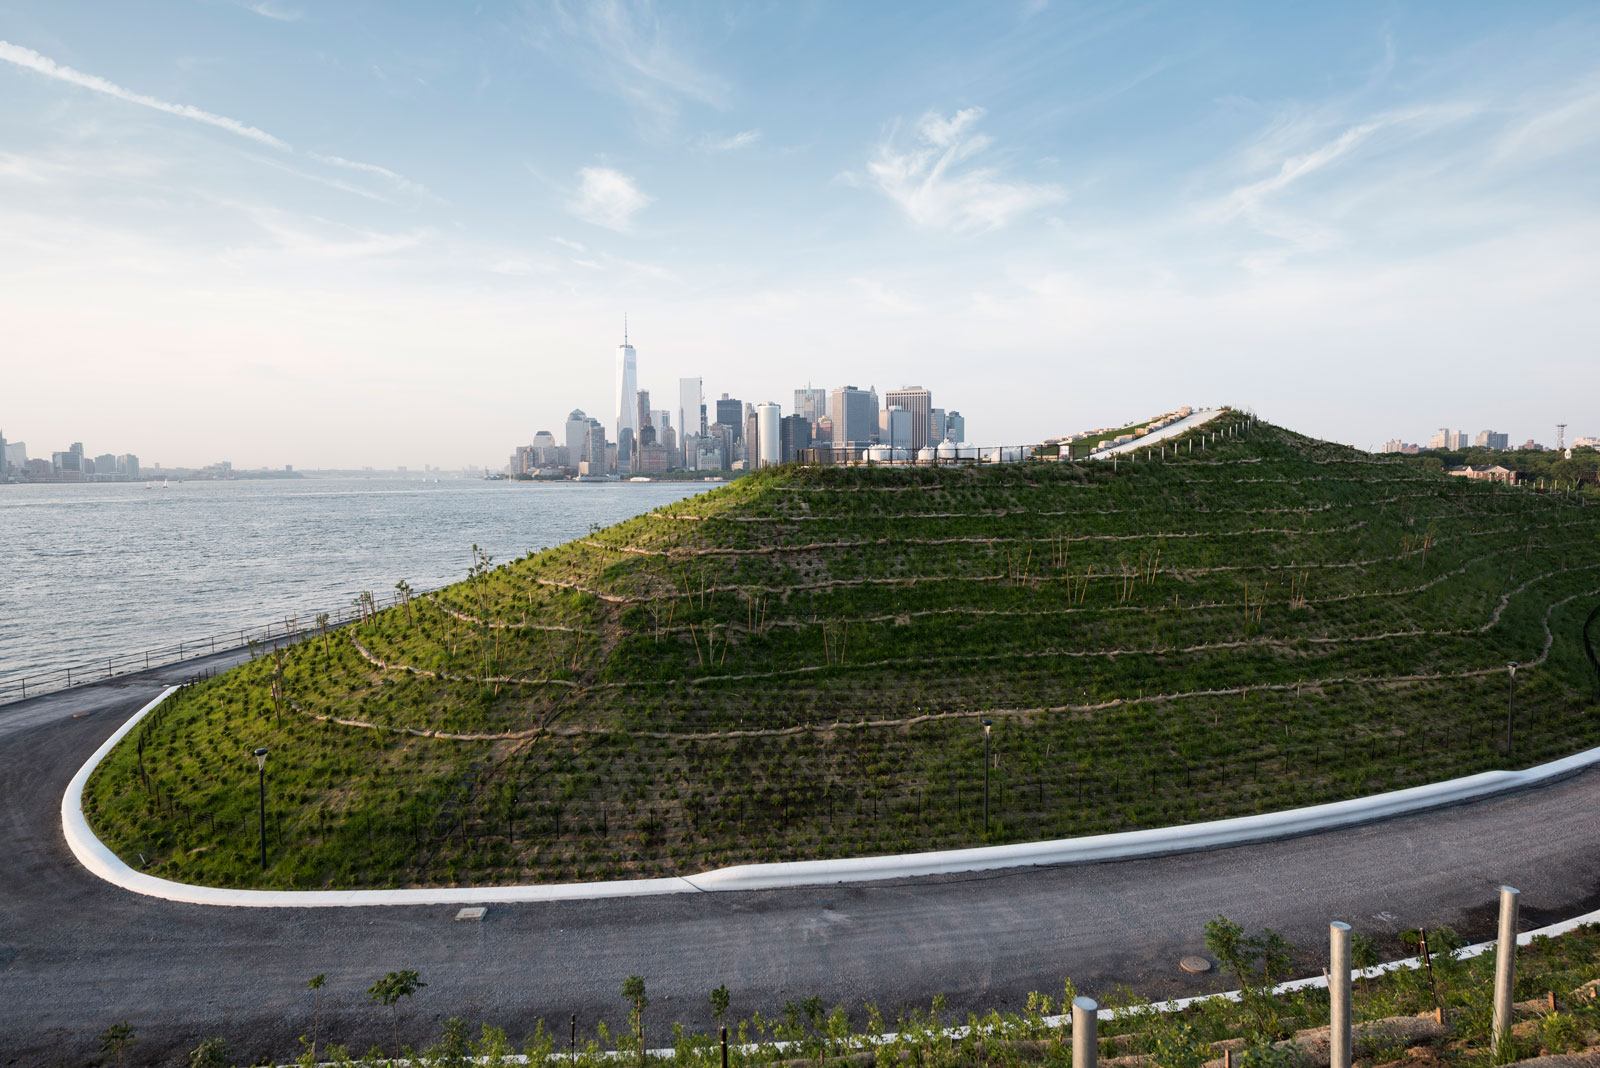 View of Outlook Hill and lower Manhattan in the distance, Governors Island, New York, 2016